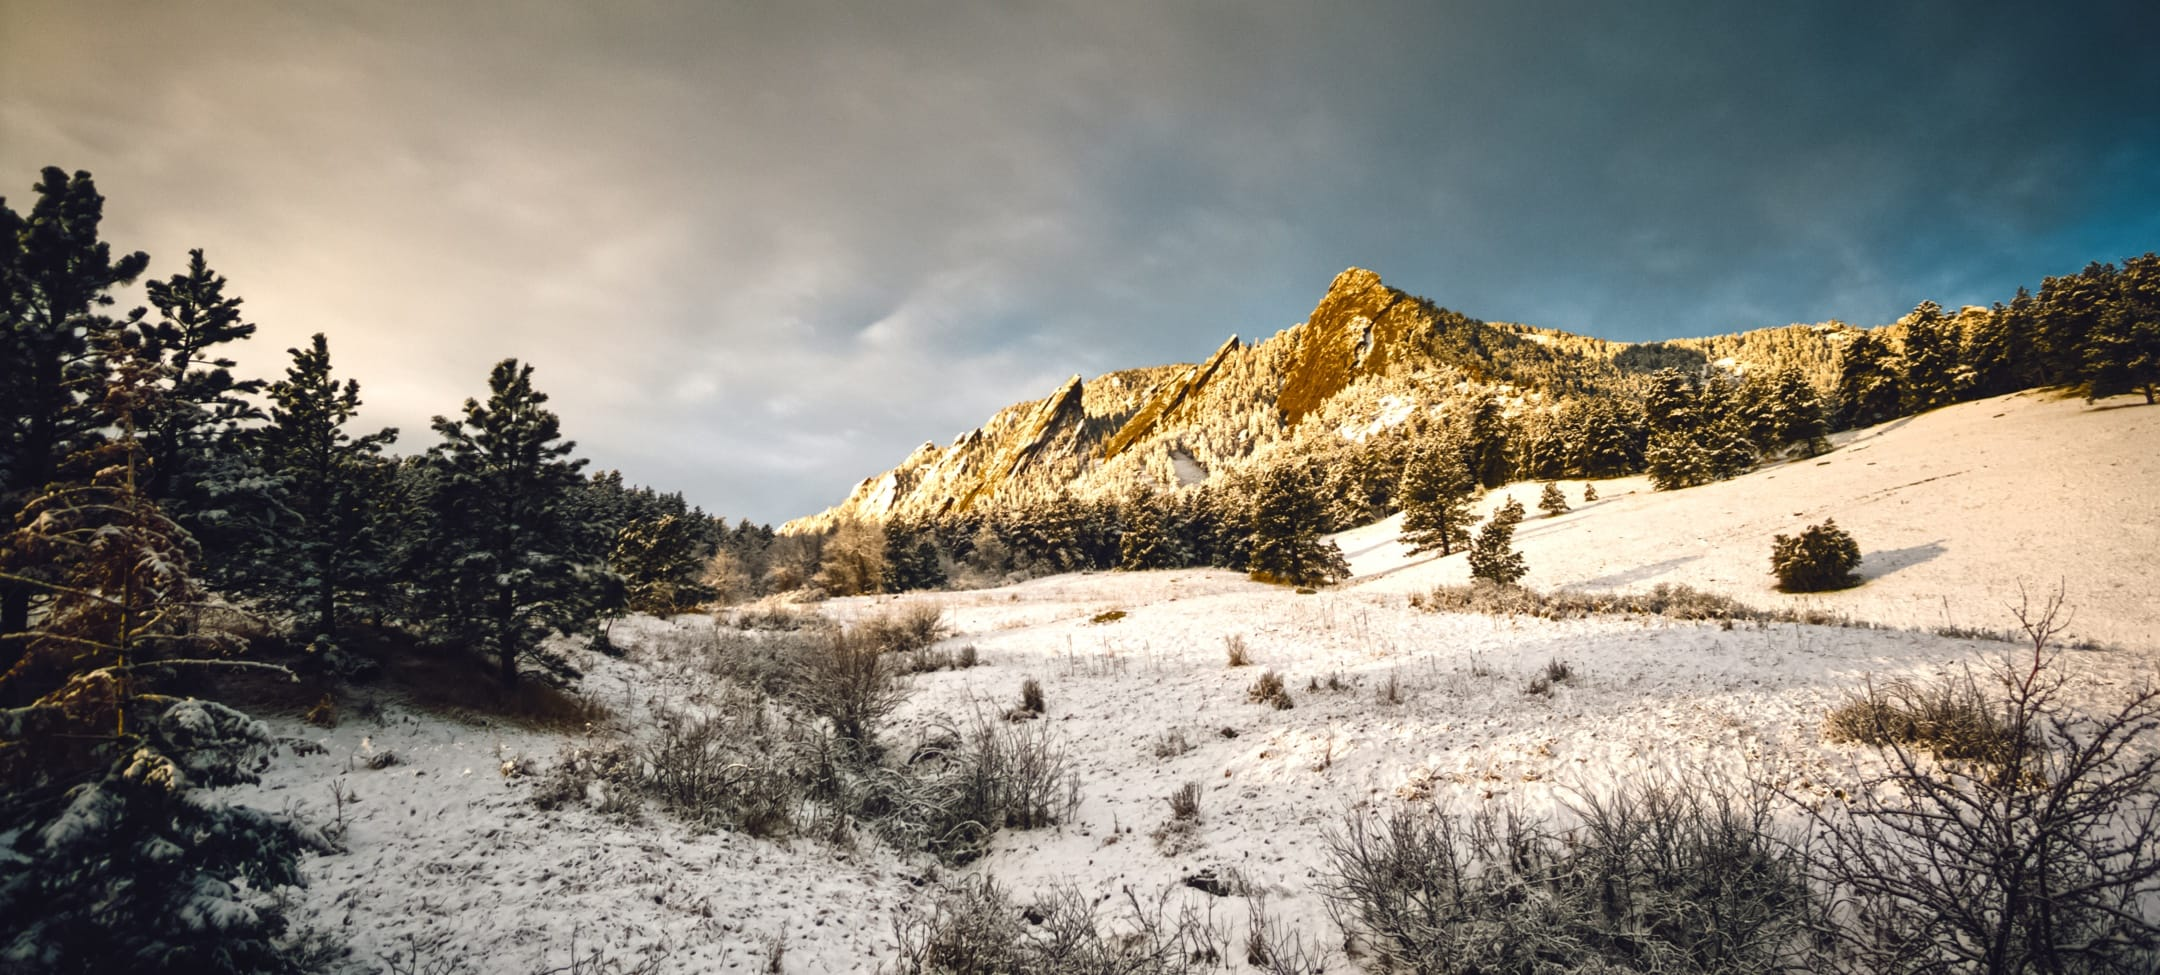 Snowy mountains in Boulder